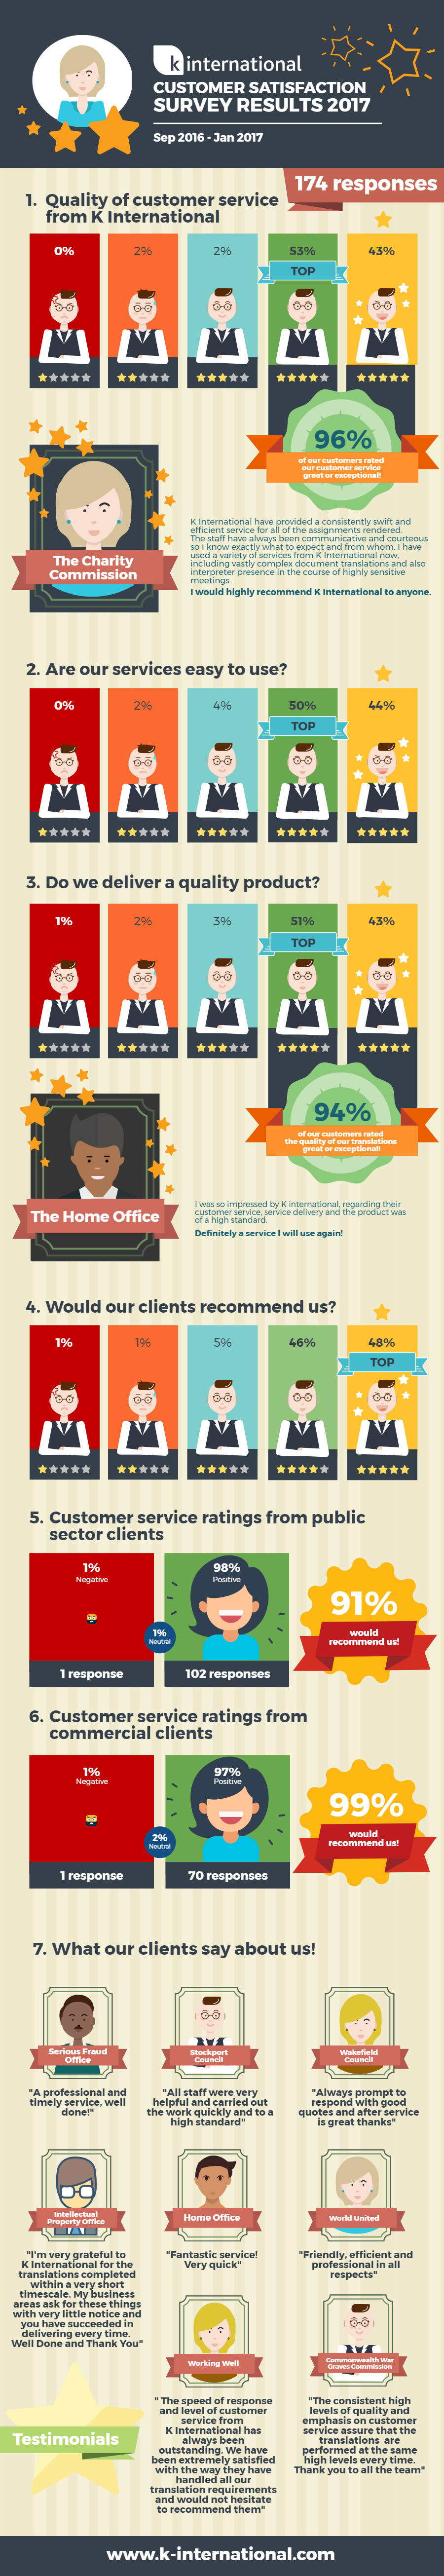 K International Customer Satisfaction Infographic